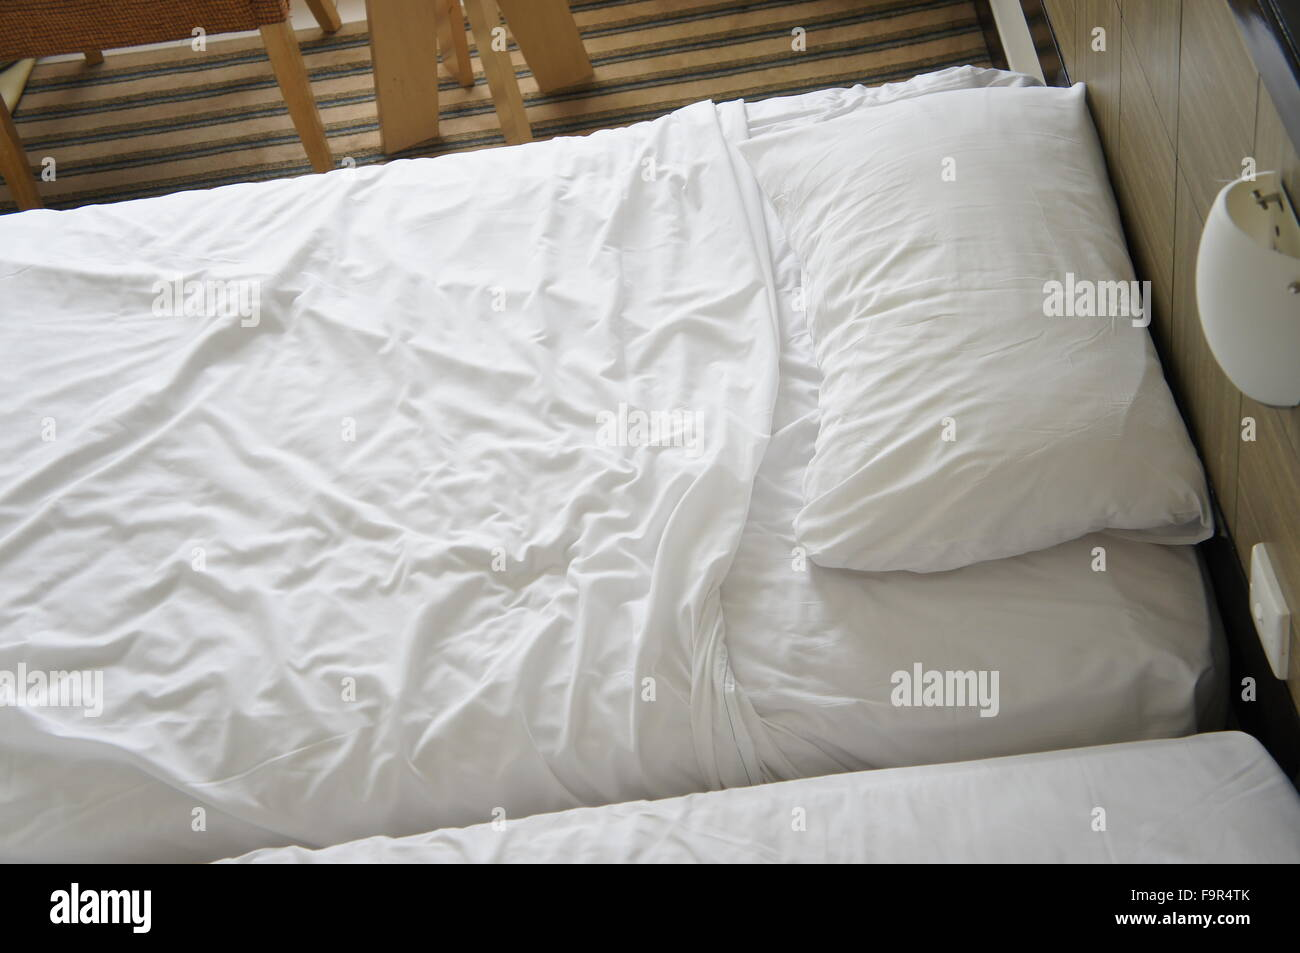 mattress top view. Delighful View Top View Of Hotel Single Bed With Pillow To Mattress Top View